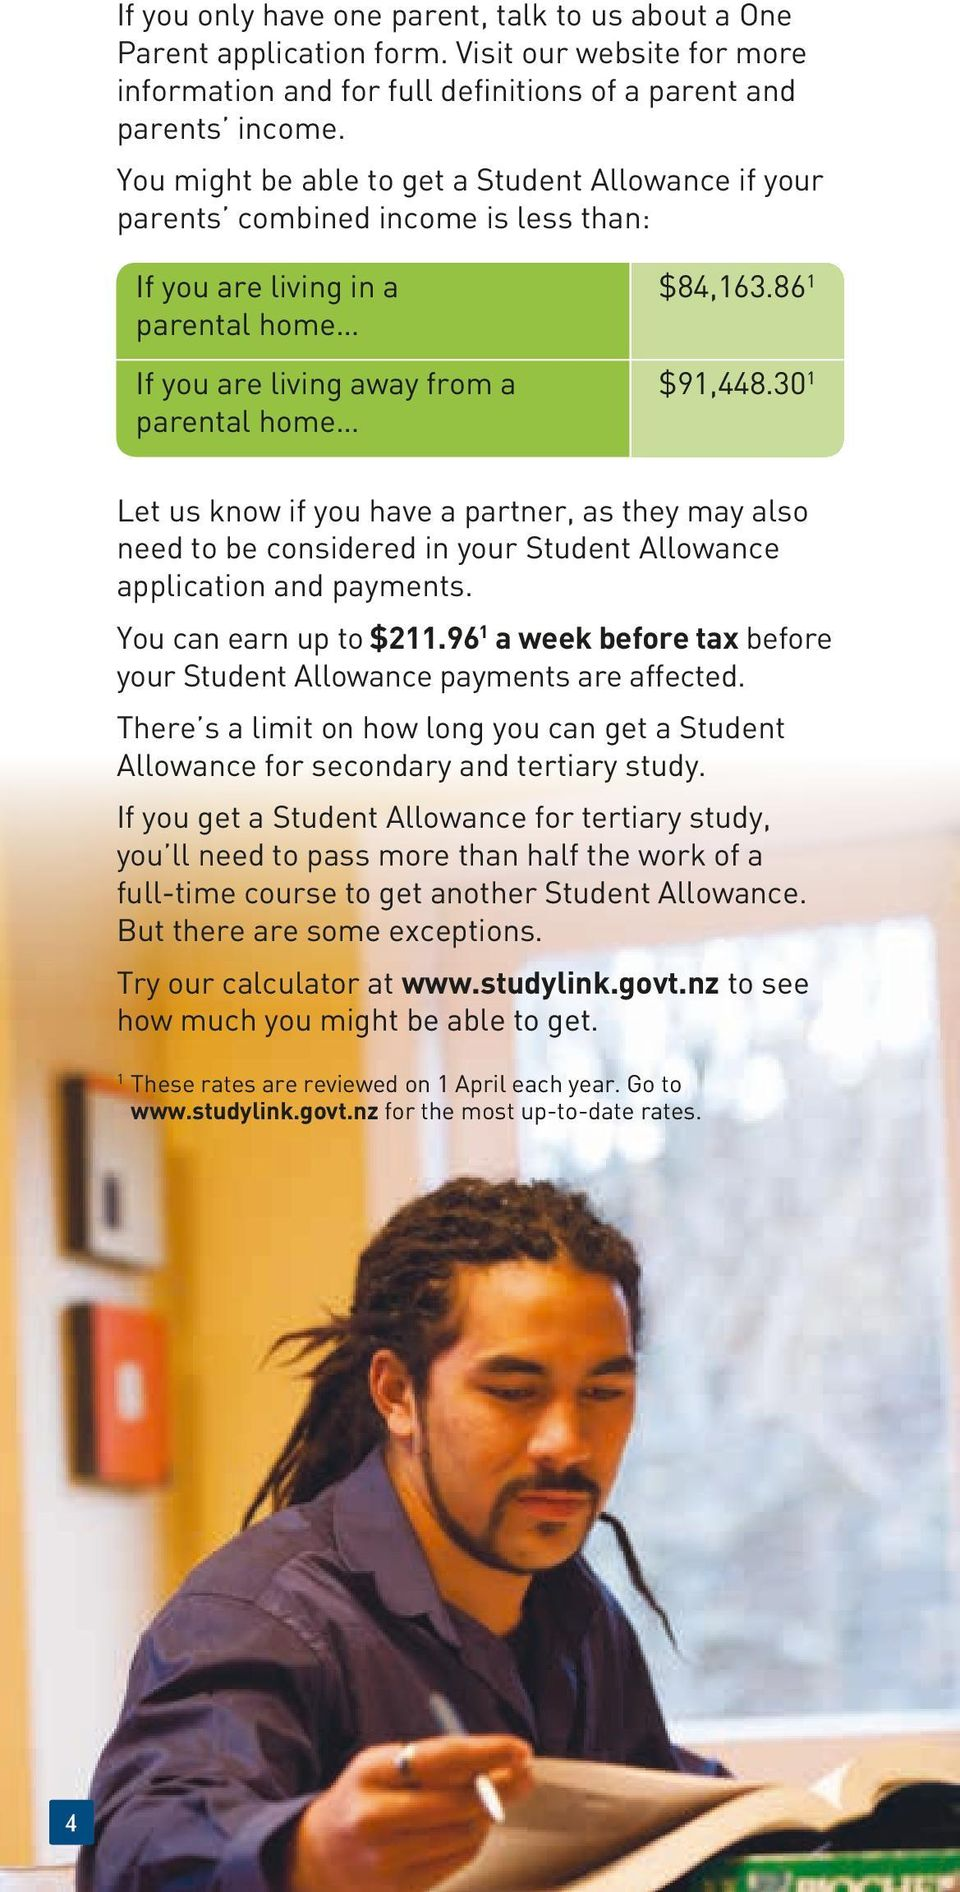 30 1 Let us know if you have a partner, as they may also need to be considered in your Student Allowance application and payments. You can earn up to $211.